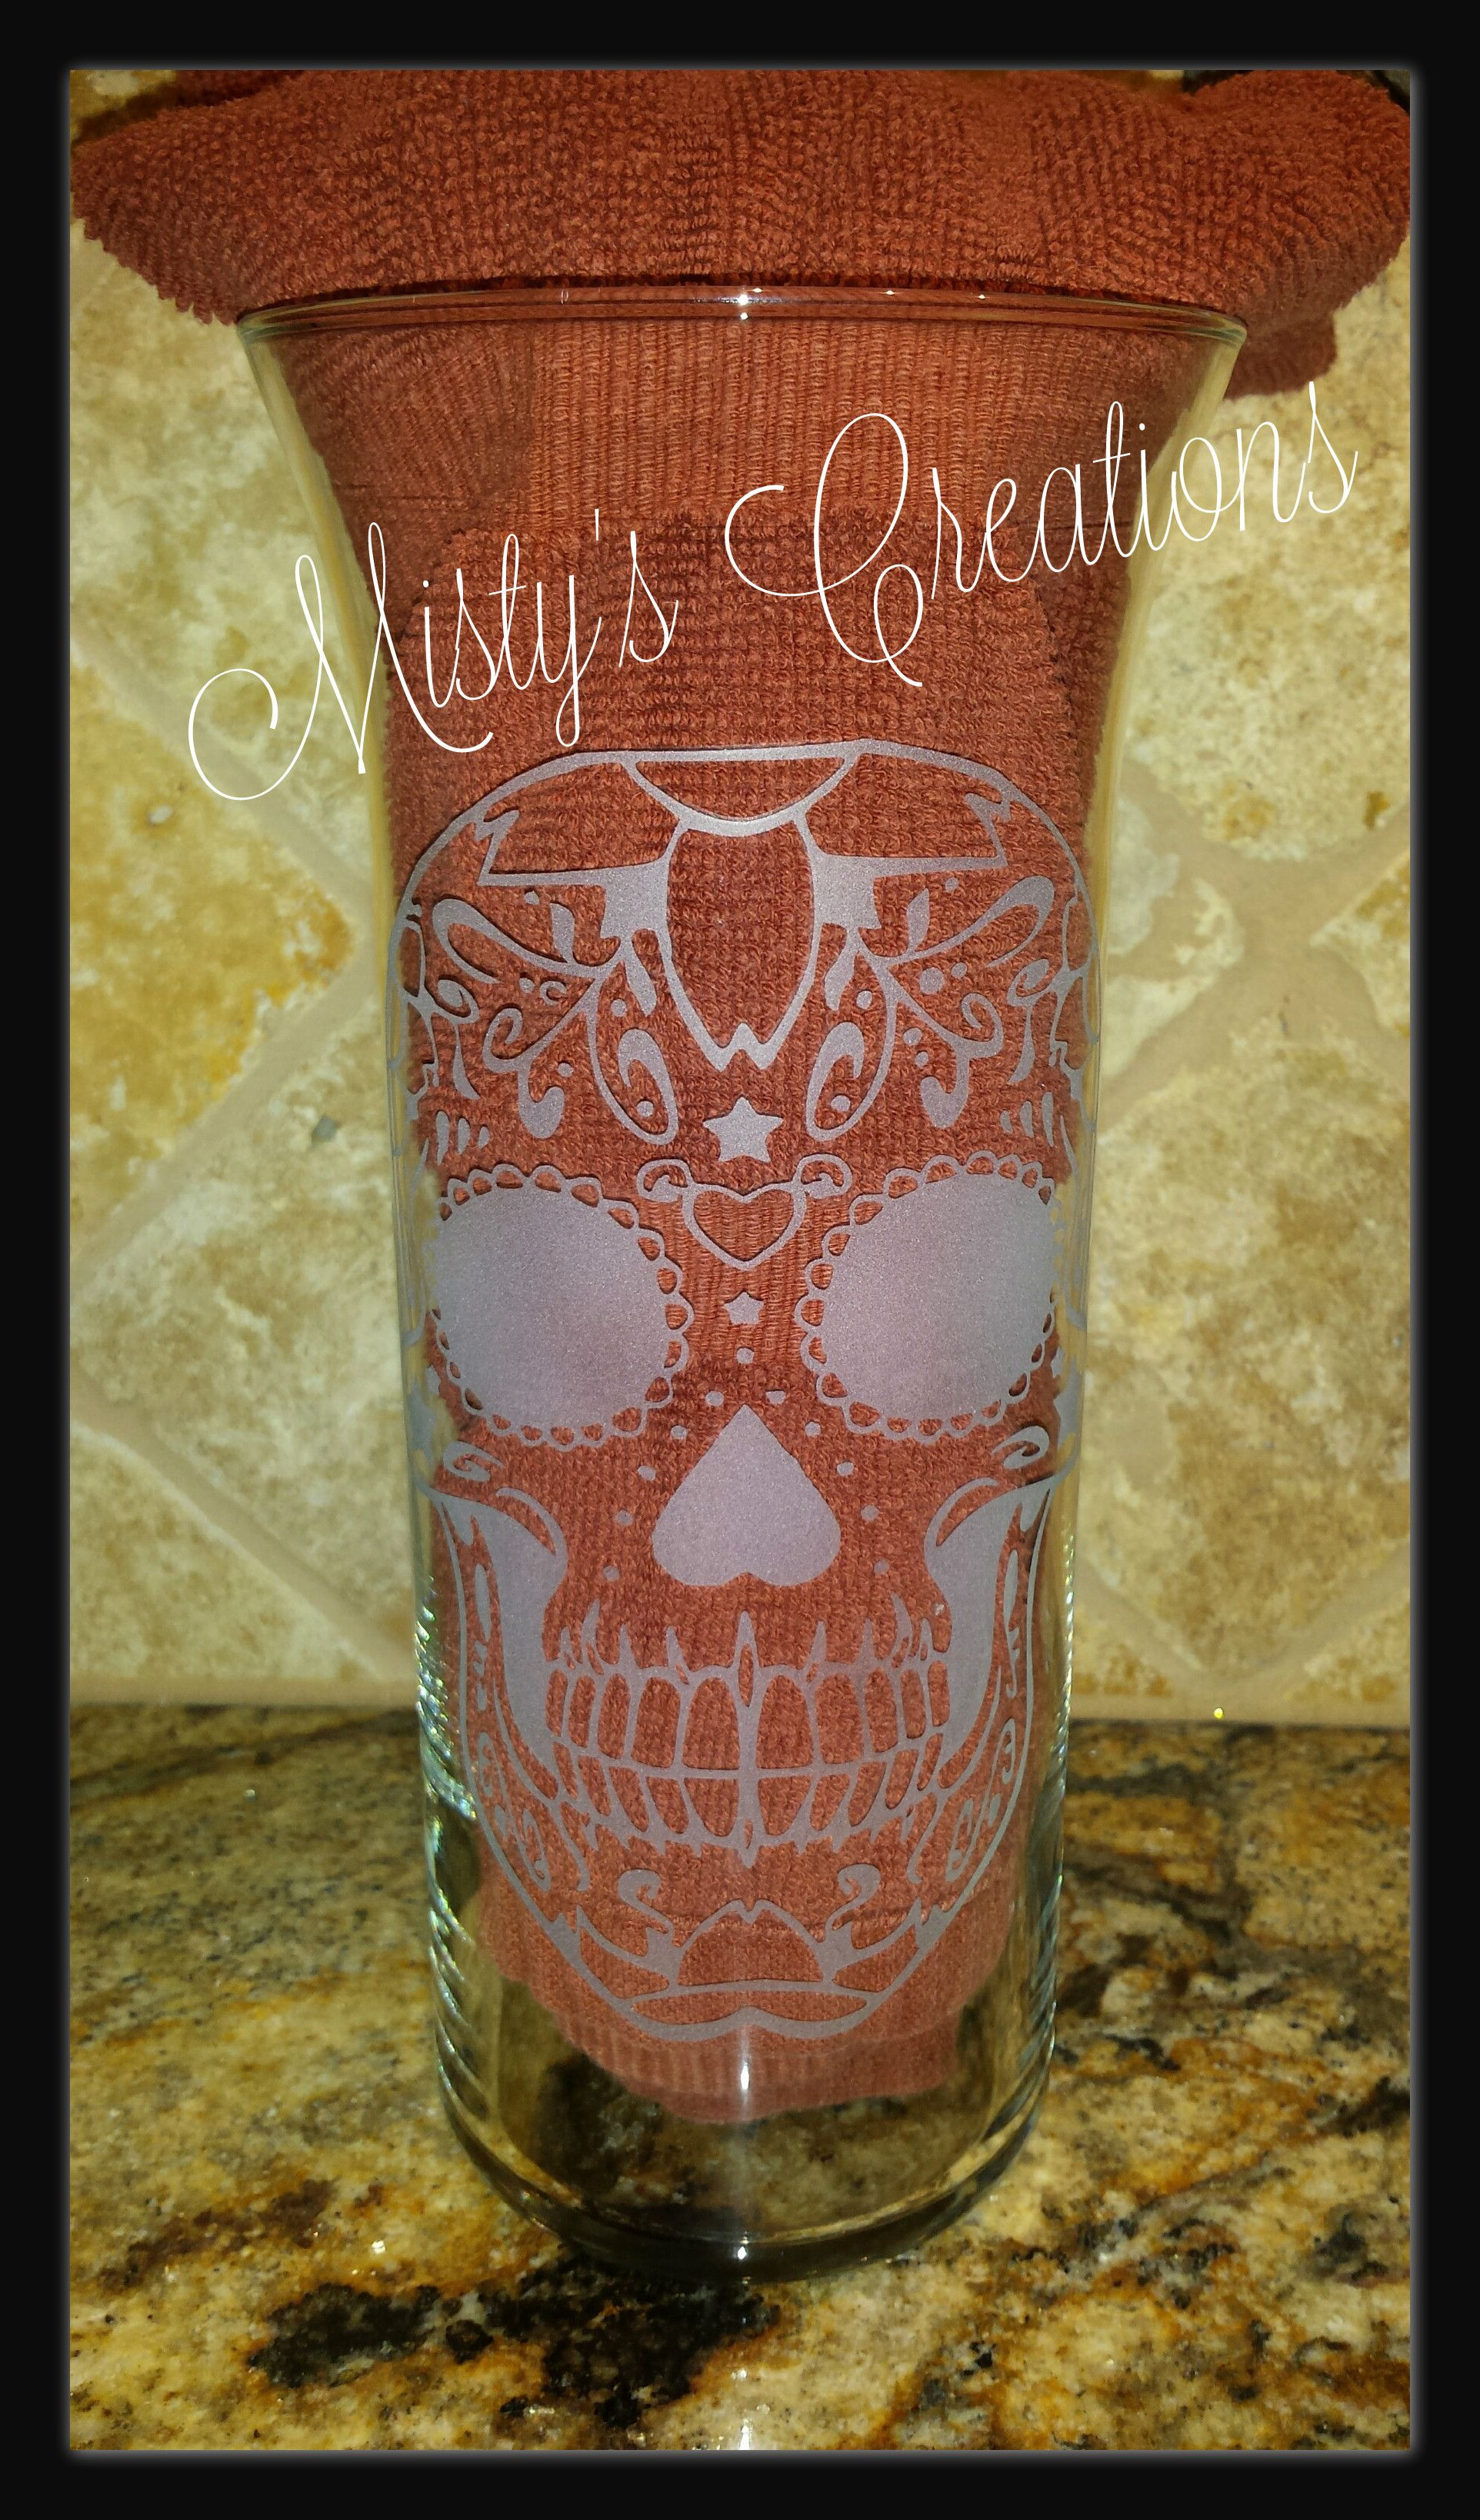 engraved vases wedding of this 9 vase was a wedding gift the sugar skull was the same design inside this 9 vase was a wedding gift the sugar skull was the same design that was on their wedding invitations